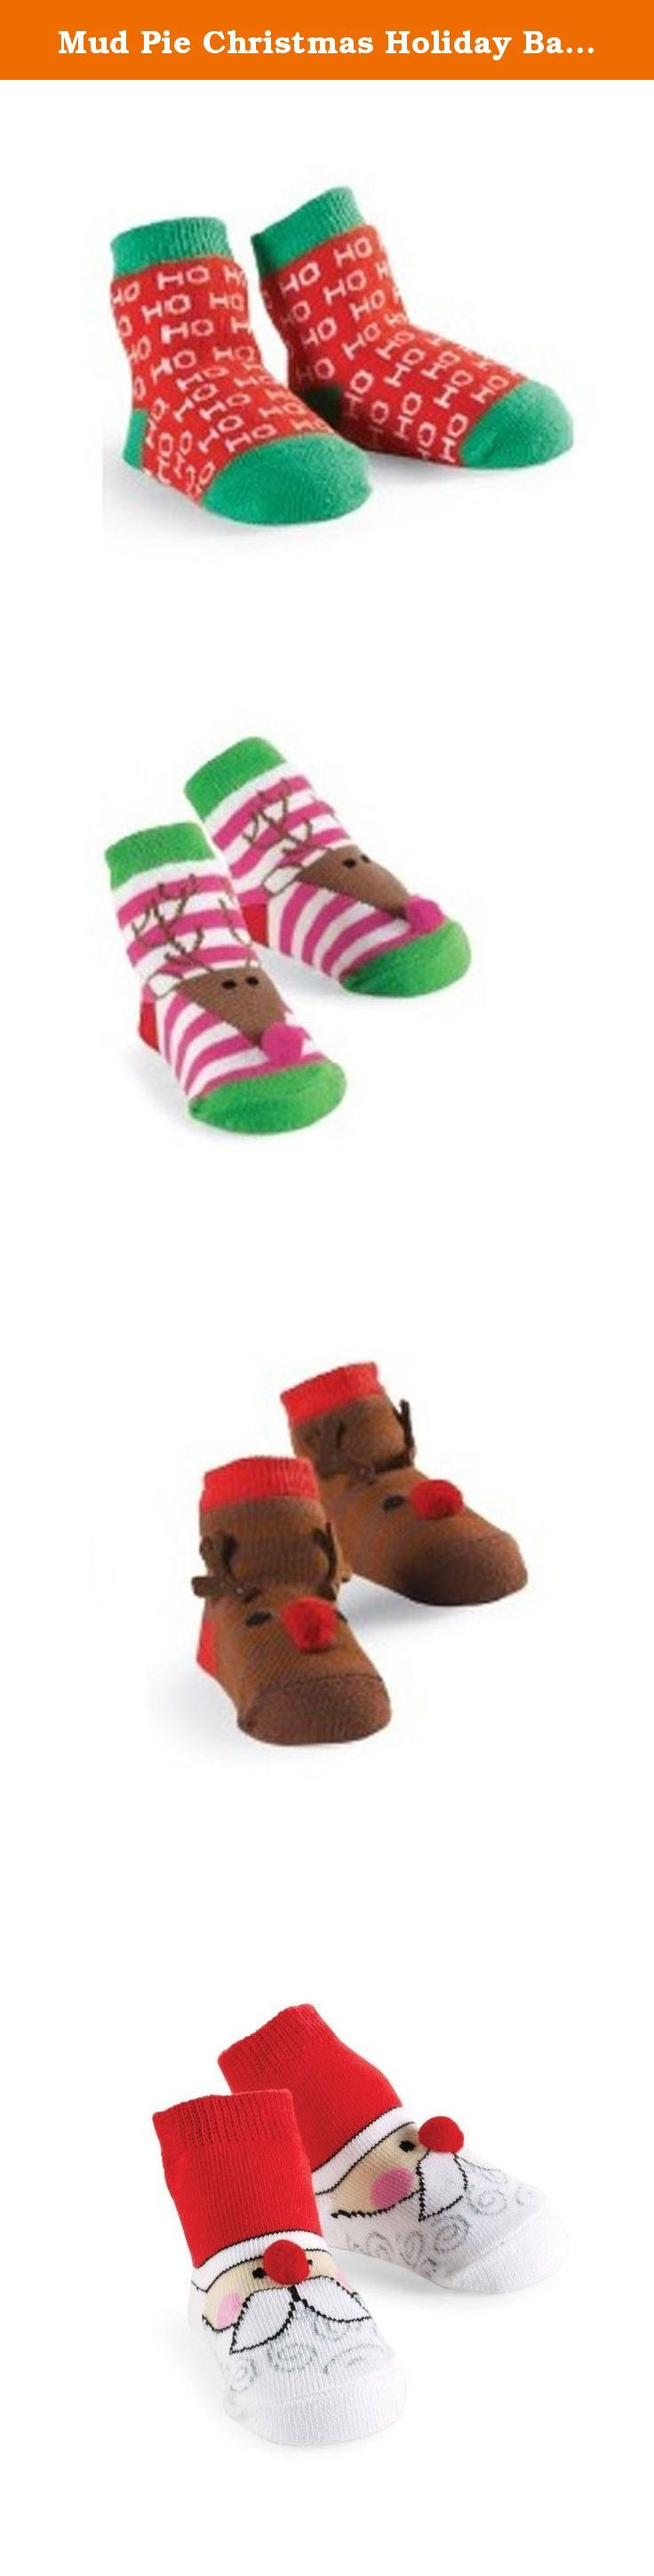 Mud Pie Christmas Holiday Baby Boy or Girl Socks (HO HO HO 1542075). Mud Pie is a lifestyle brand offering endless cross-merchandising opportunities. Their Kids, Living and Fashion collections lead the industry with grab-and-go gifts and affordable style-apparel, keepsakes and layette in kids; women's fashion and accessories; and boxed gifts for home entertaining or gifting. This season, Mud Pie is also the go-to resource for initials in every category with over 30 new programs and dozens…